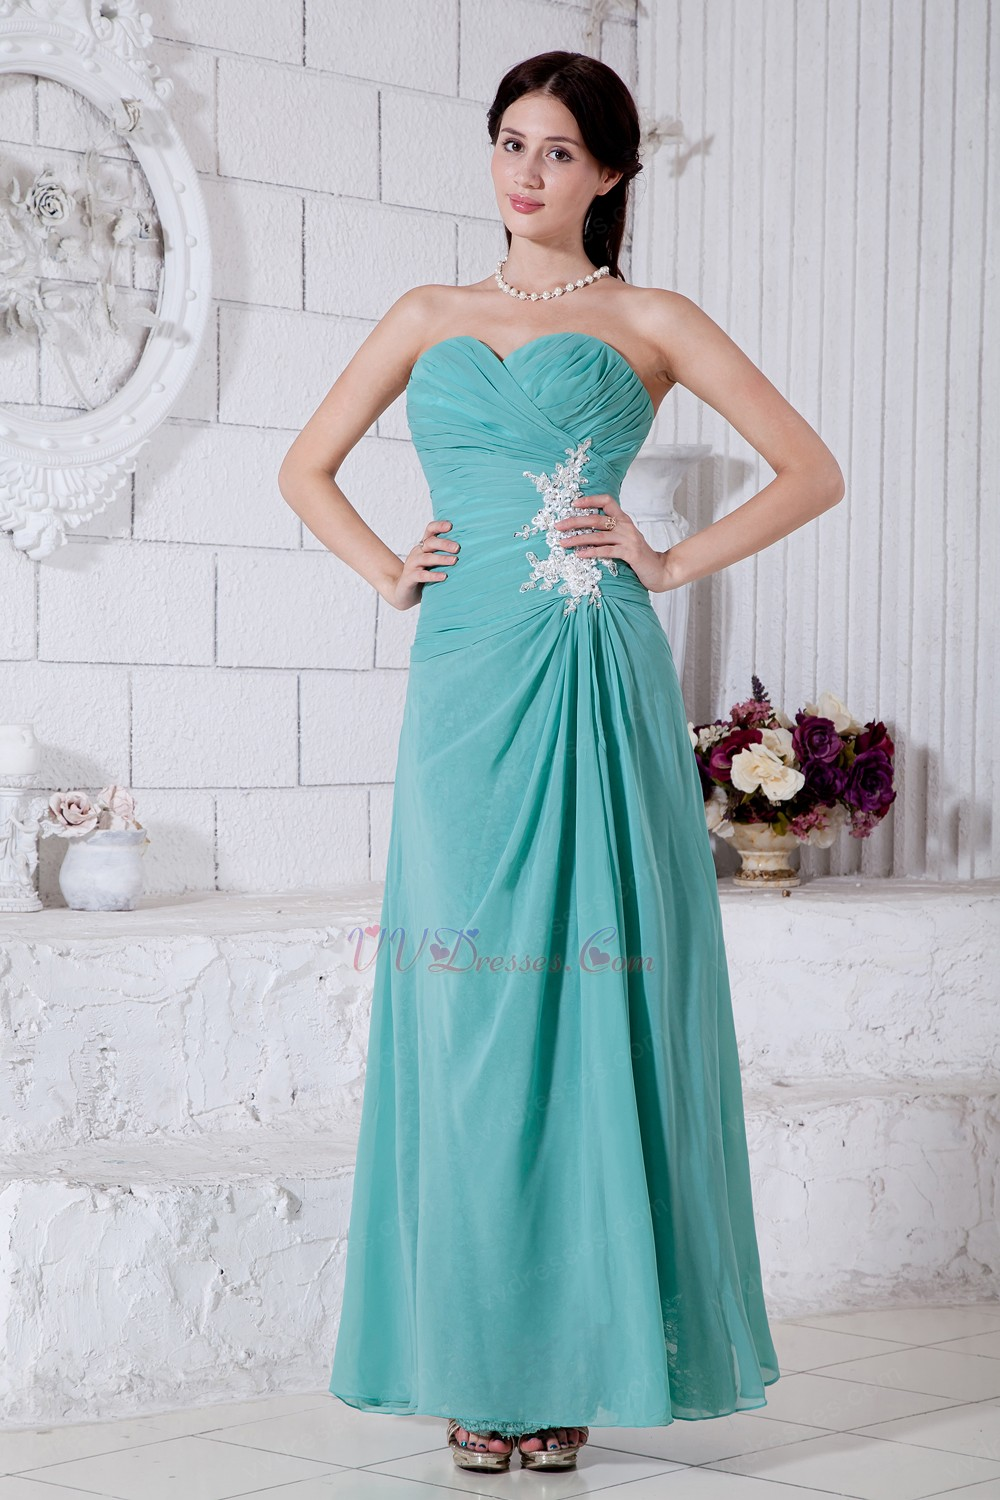 Empire long turquoise bridesmaid dresses appliques empire long turquoise bridesmaid dresses ombrellifo Image collections